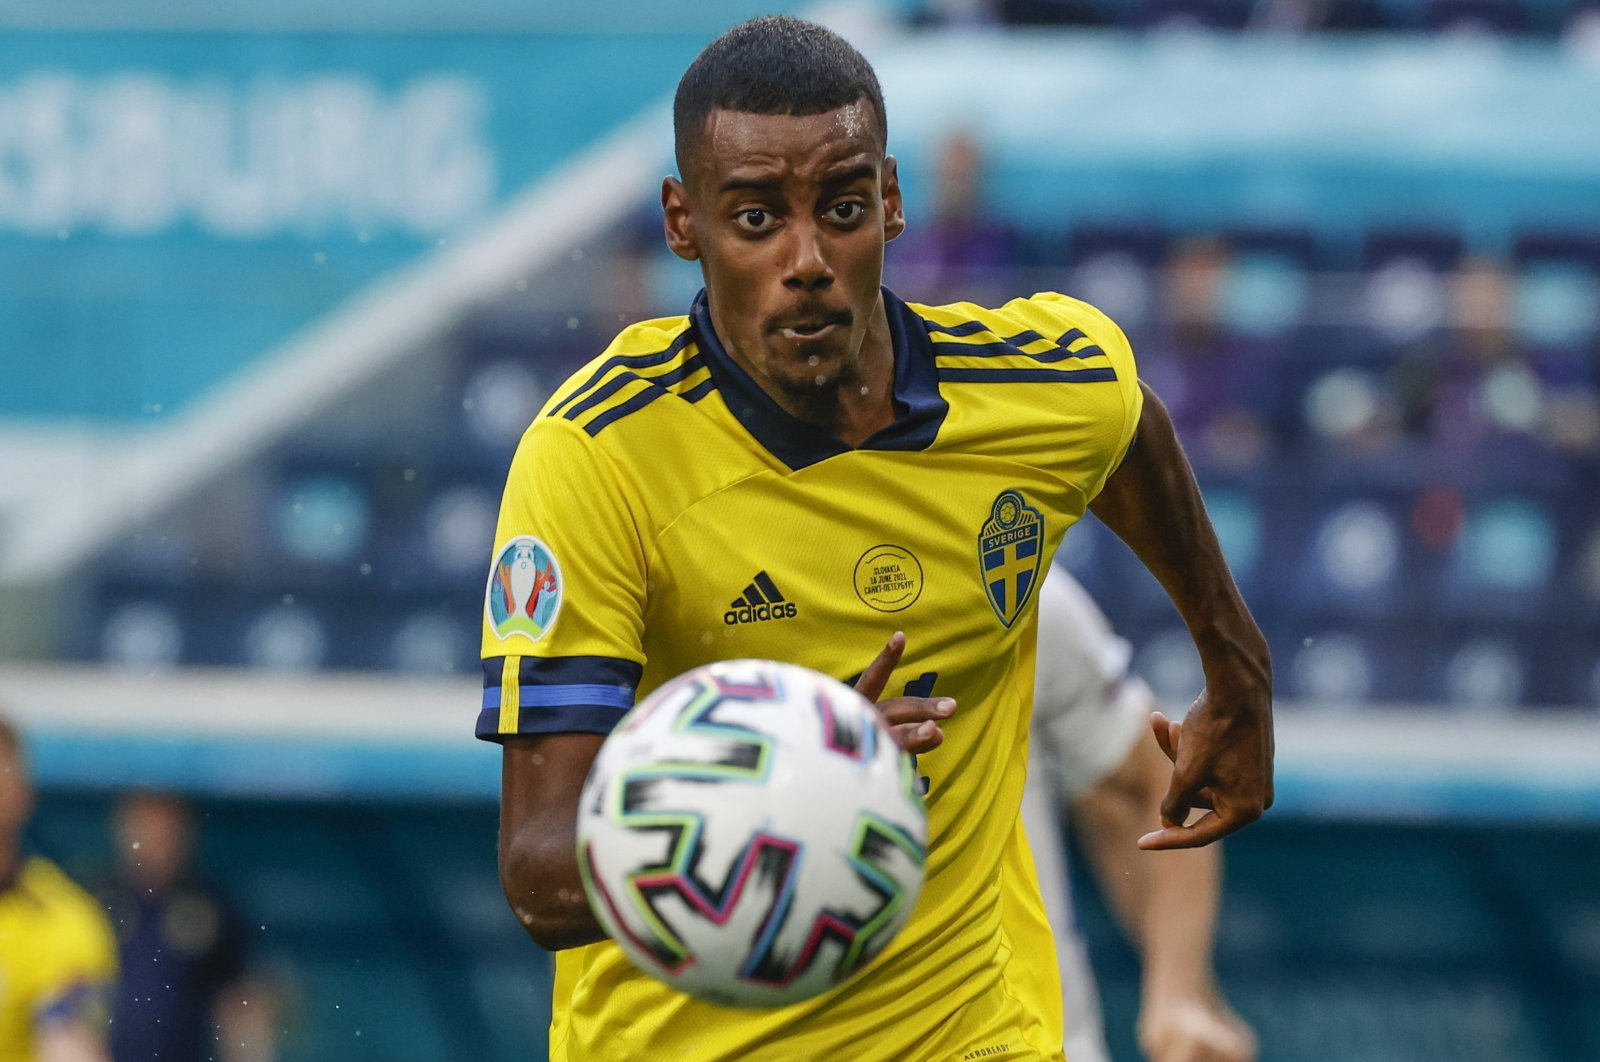 Sweden's Alexander Isak keeps his eyes on the ball during the Euro 2020 football championship group E match between Sweden and Slovakia, at Saint Petersburg Stadium, in Saint Petersburg, Russia, June 18, 2021. (AP Photo)